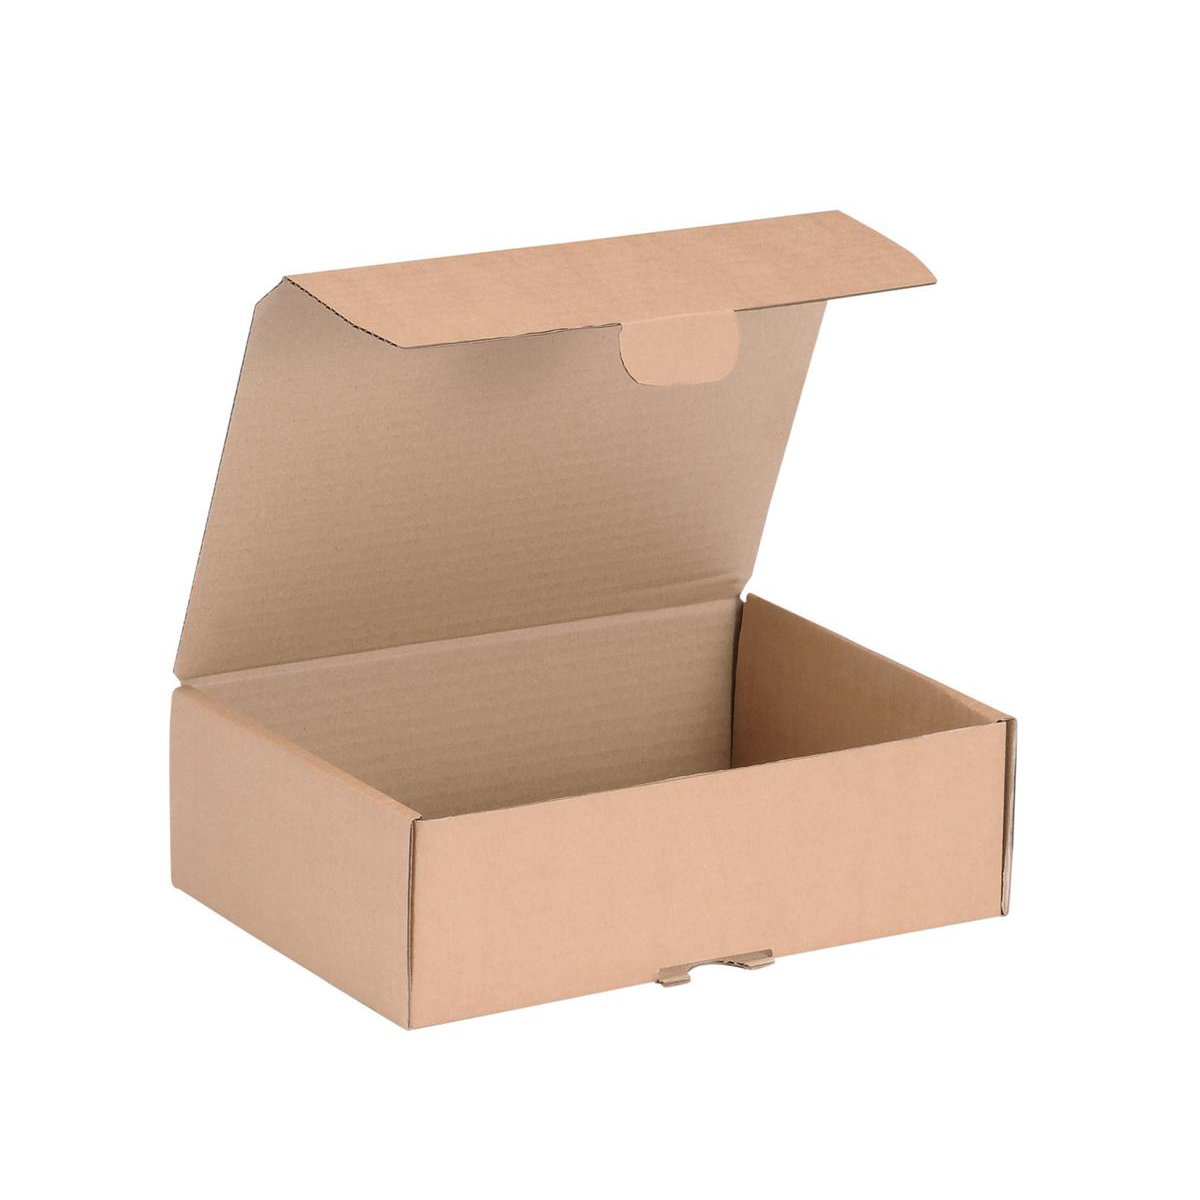 Packaging boxes Mailing Carton Easy Assemble S 250x175x80mm Brown Pack 20